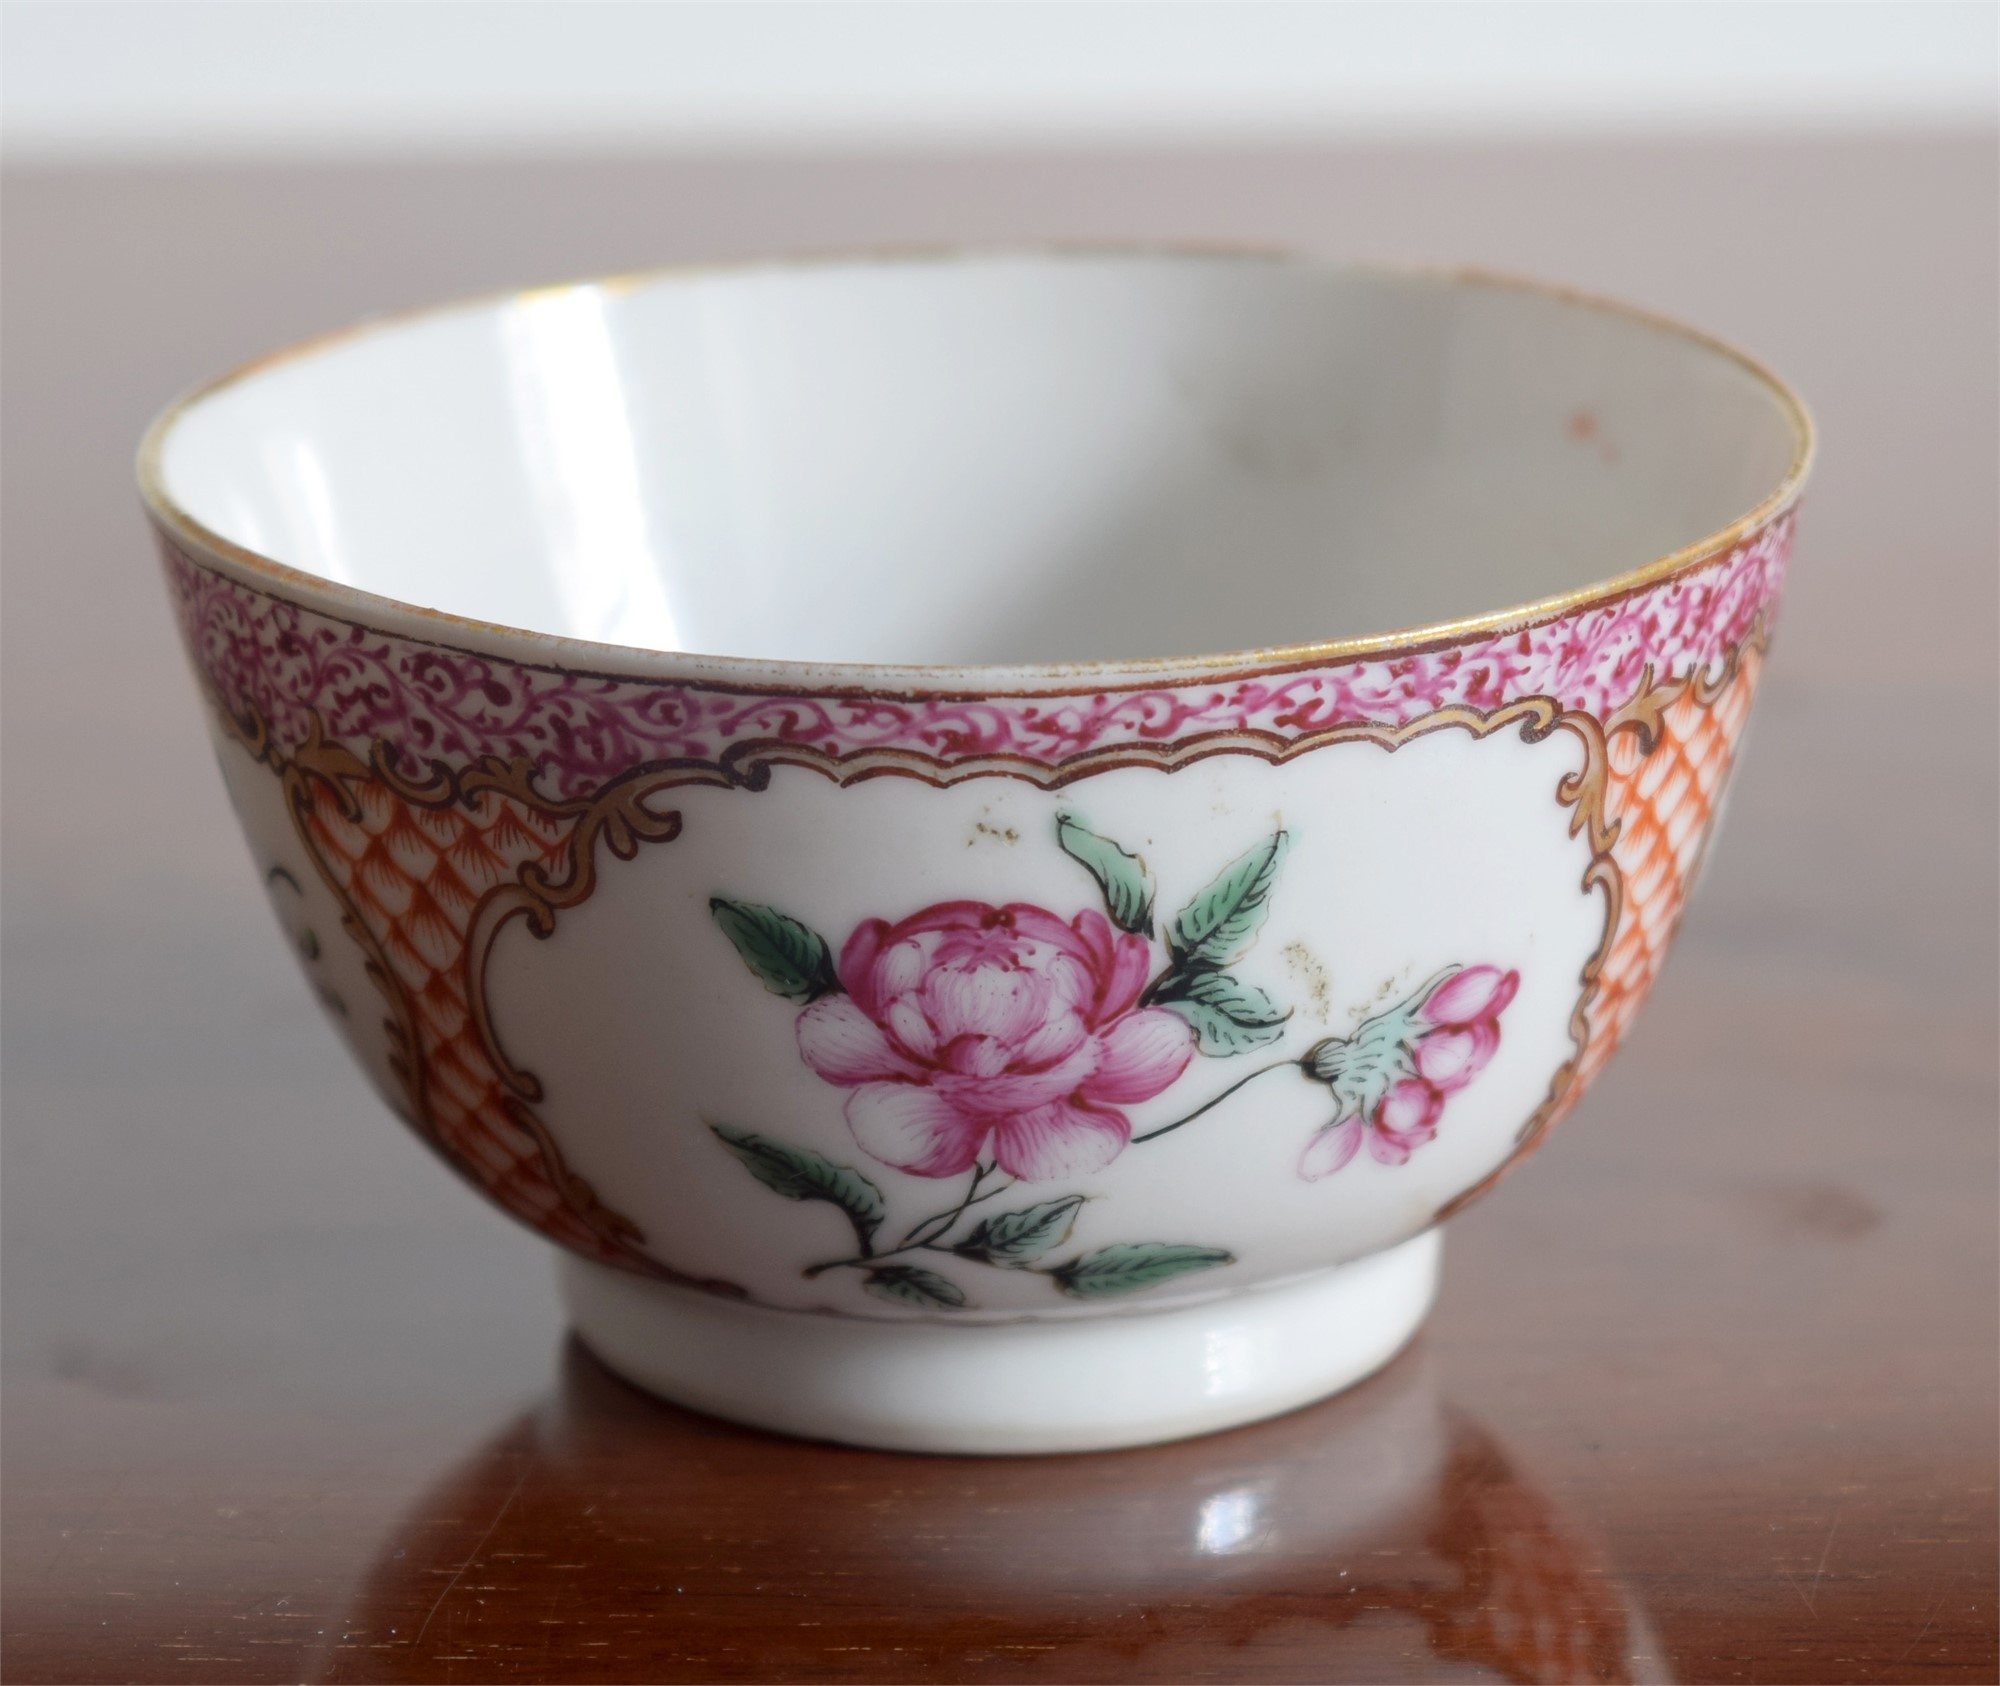 A FR CUP WITH CENTRAL FLOWER, SMALL PUCE FOLIAGE